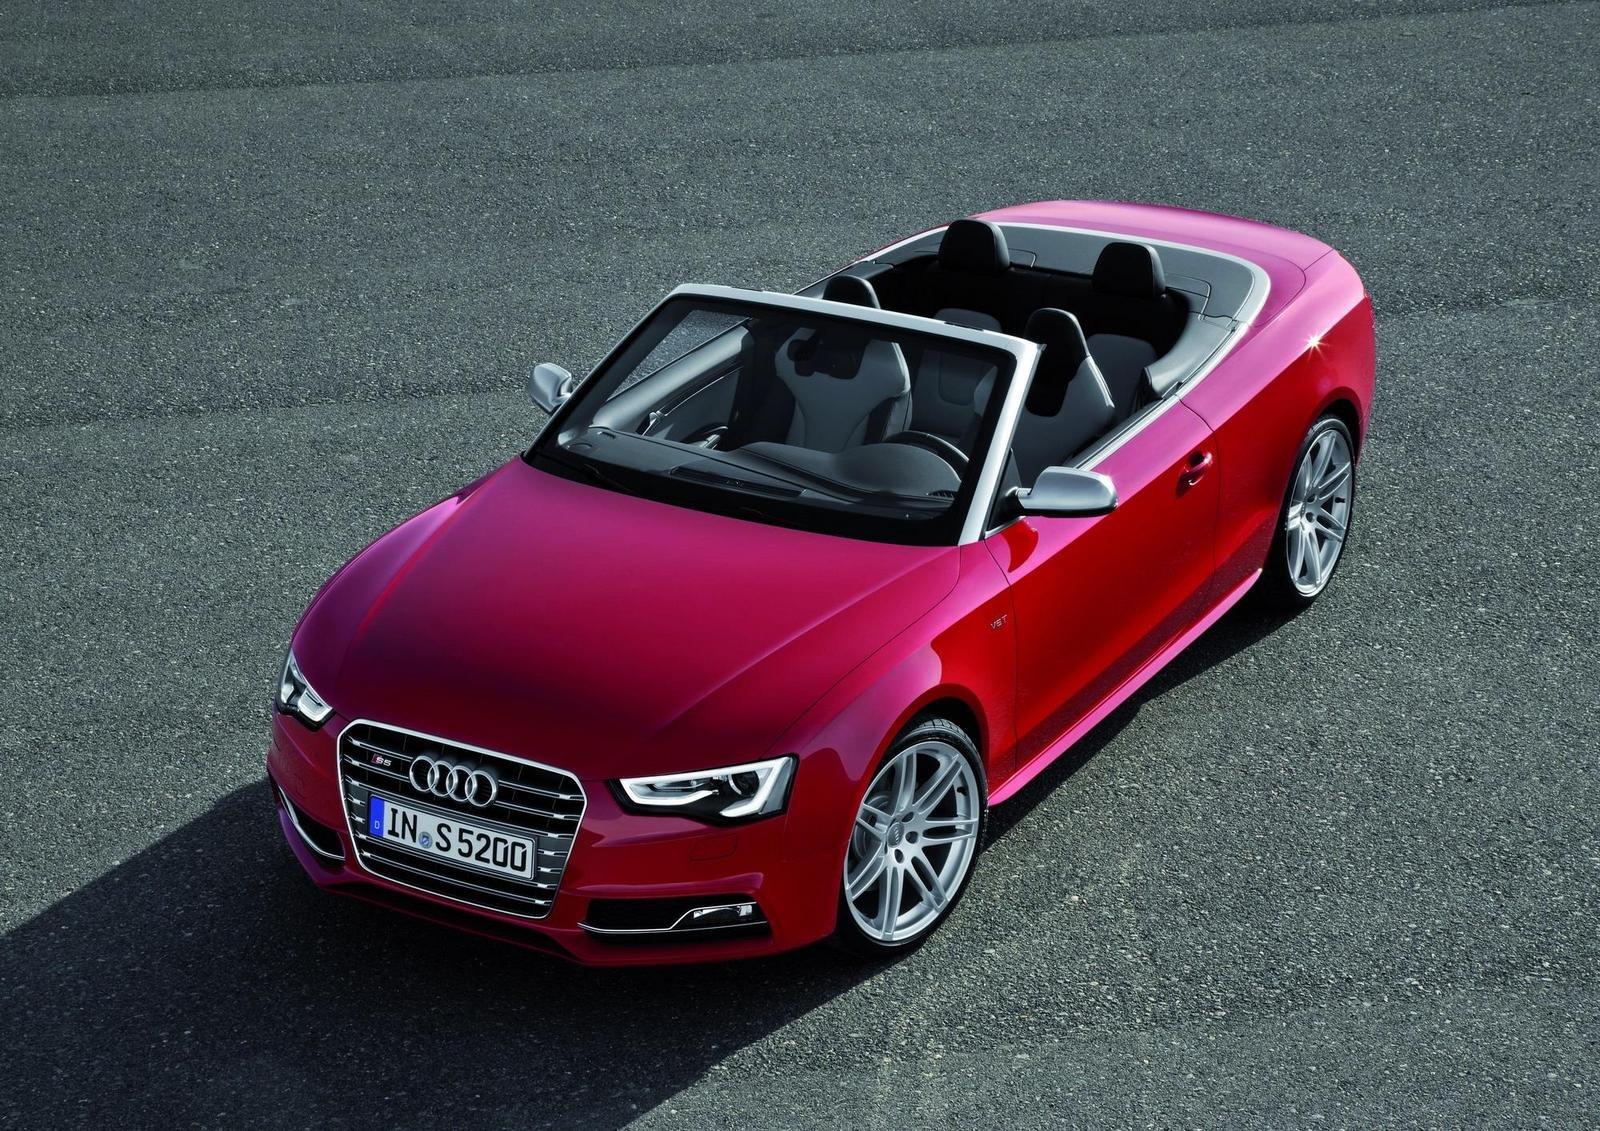 http://pictures.topspeed.com/IMG/crop/201107/audi-s5-convertible-7_1600x0w.jpg